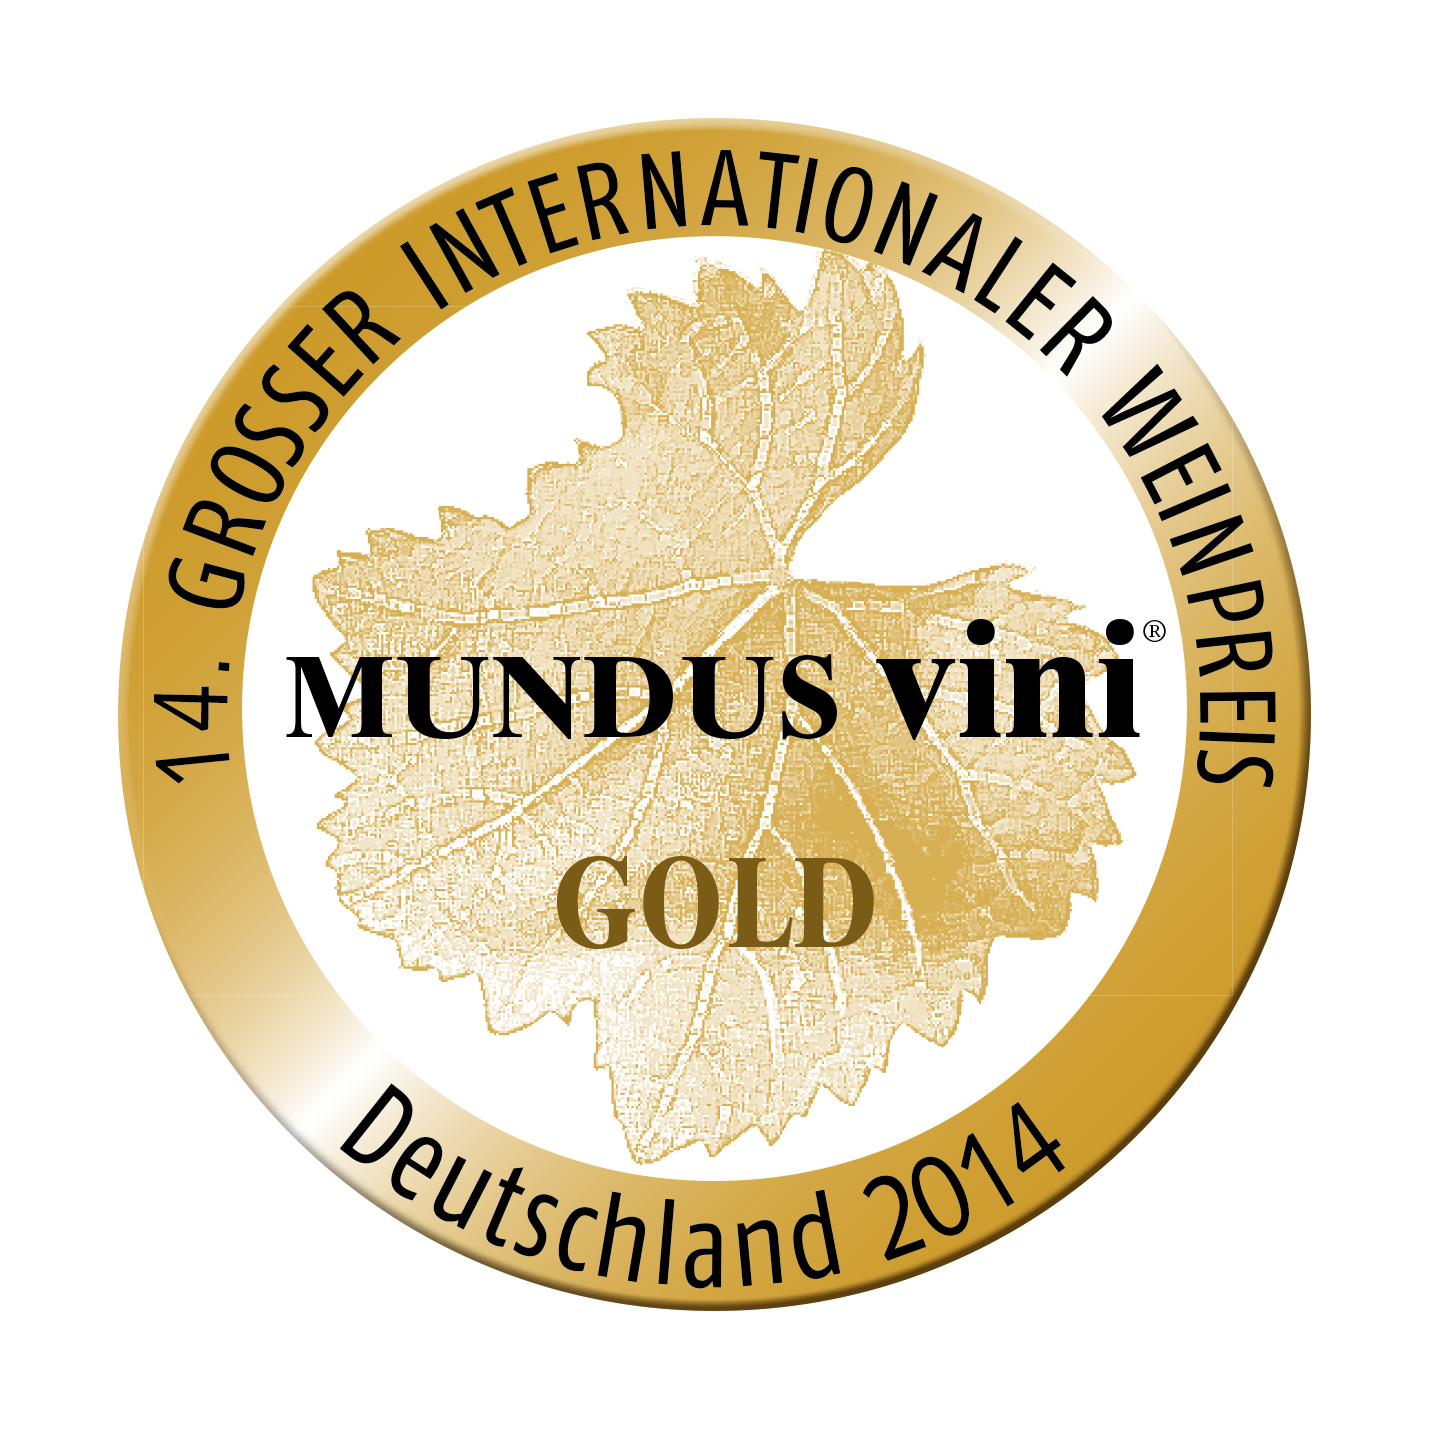 September 2014: MUNDUS vini gold medal for vintage 2013